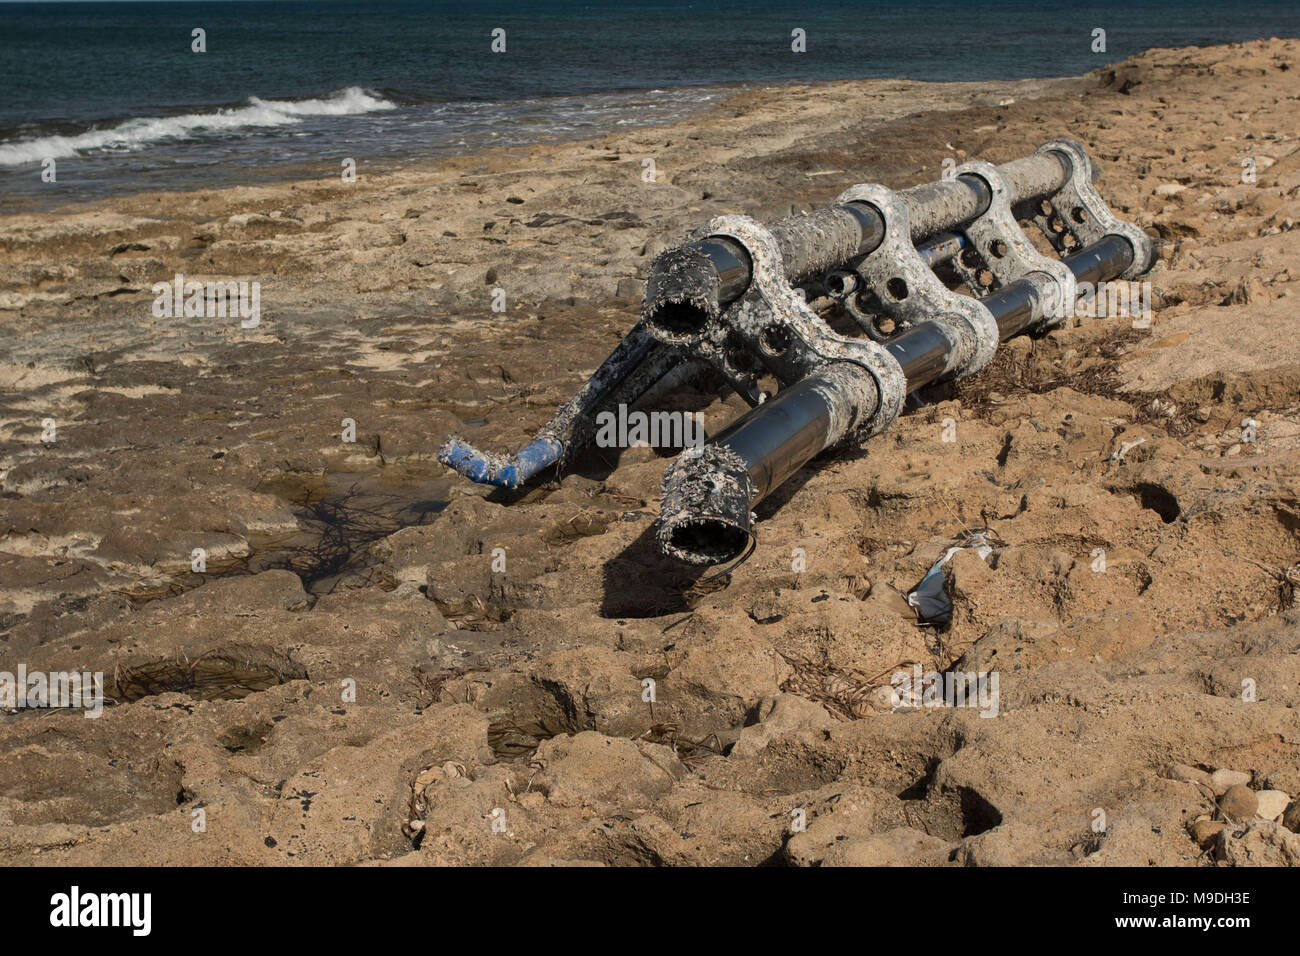 Large piece of plastic debris, environmental pollution,  covered in barnacles washed ashore on the kato paphos beach in cyprus, europe, mediterranean - Stock Image